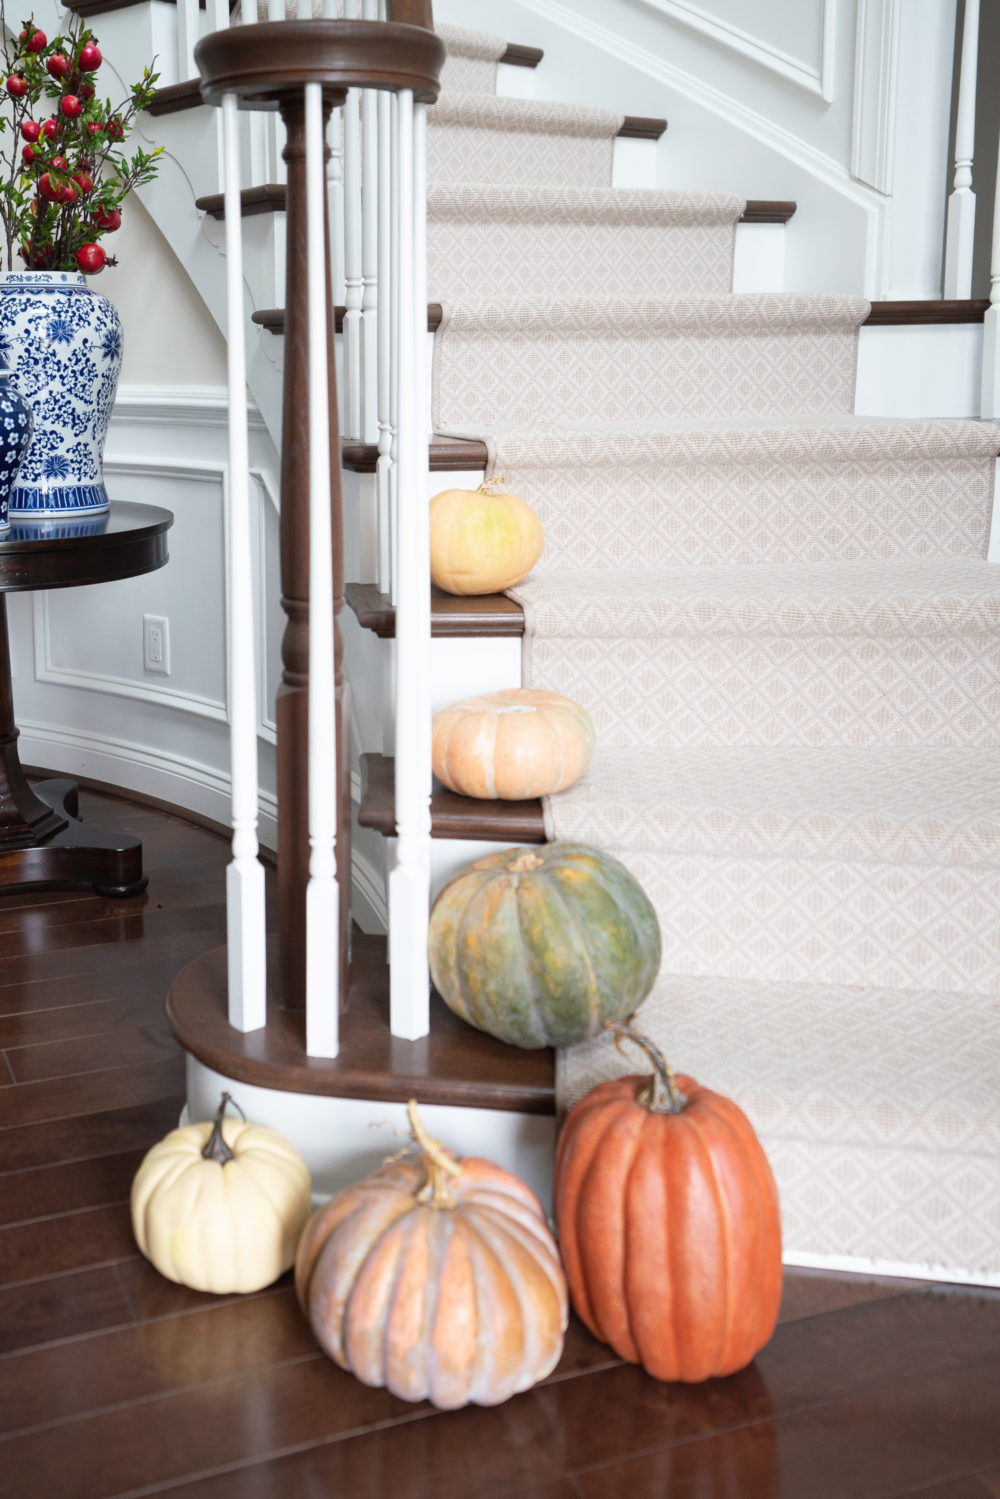 Petite Fashion Blog | Fall Home Decor Inspiration | Pumpkins on Stairs